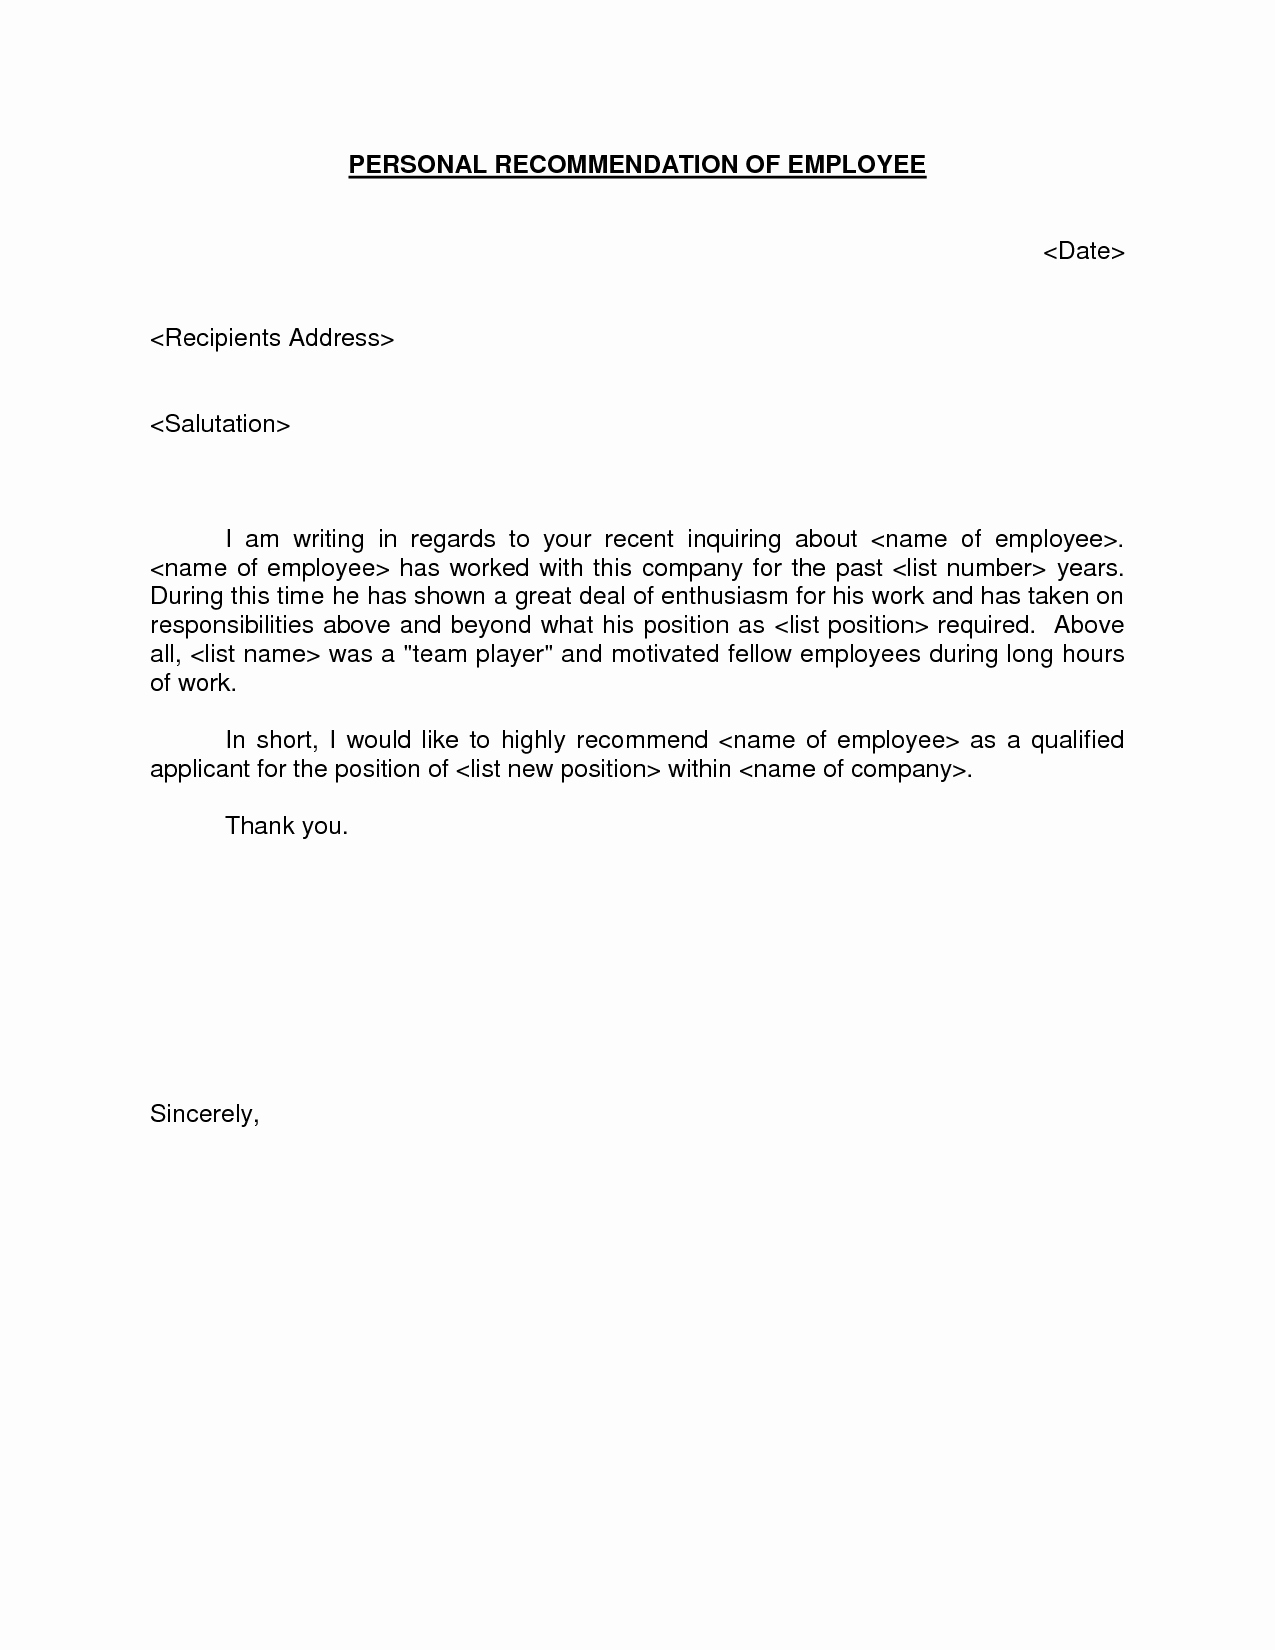 Letters Of Recommendation Template Awesome 4 Amazing Sample Re Mendation Letter